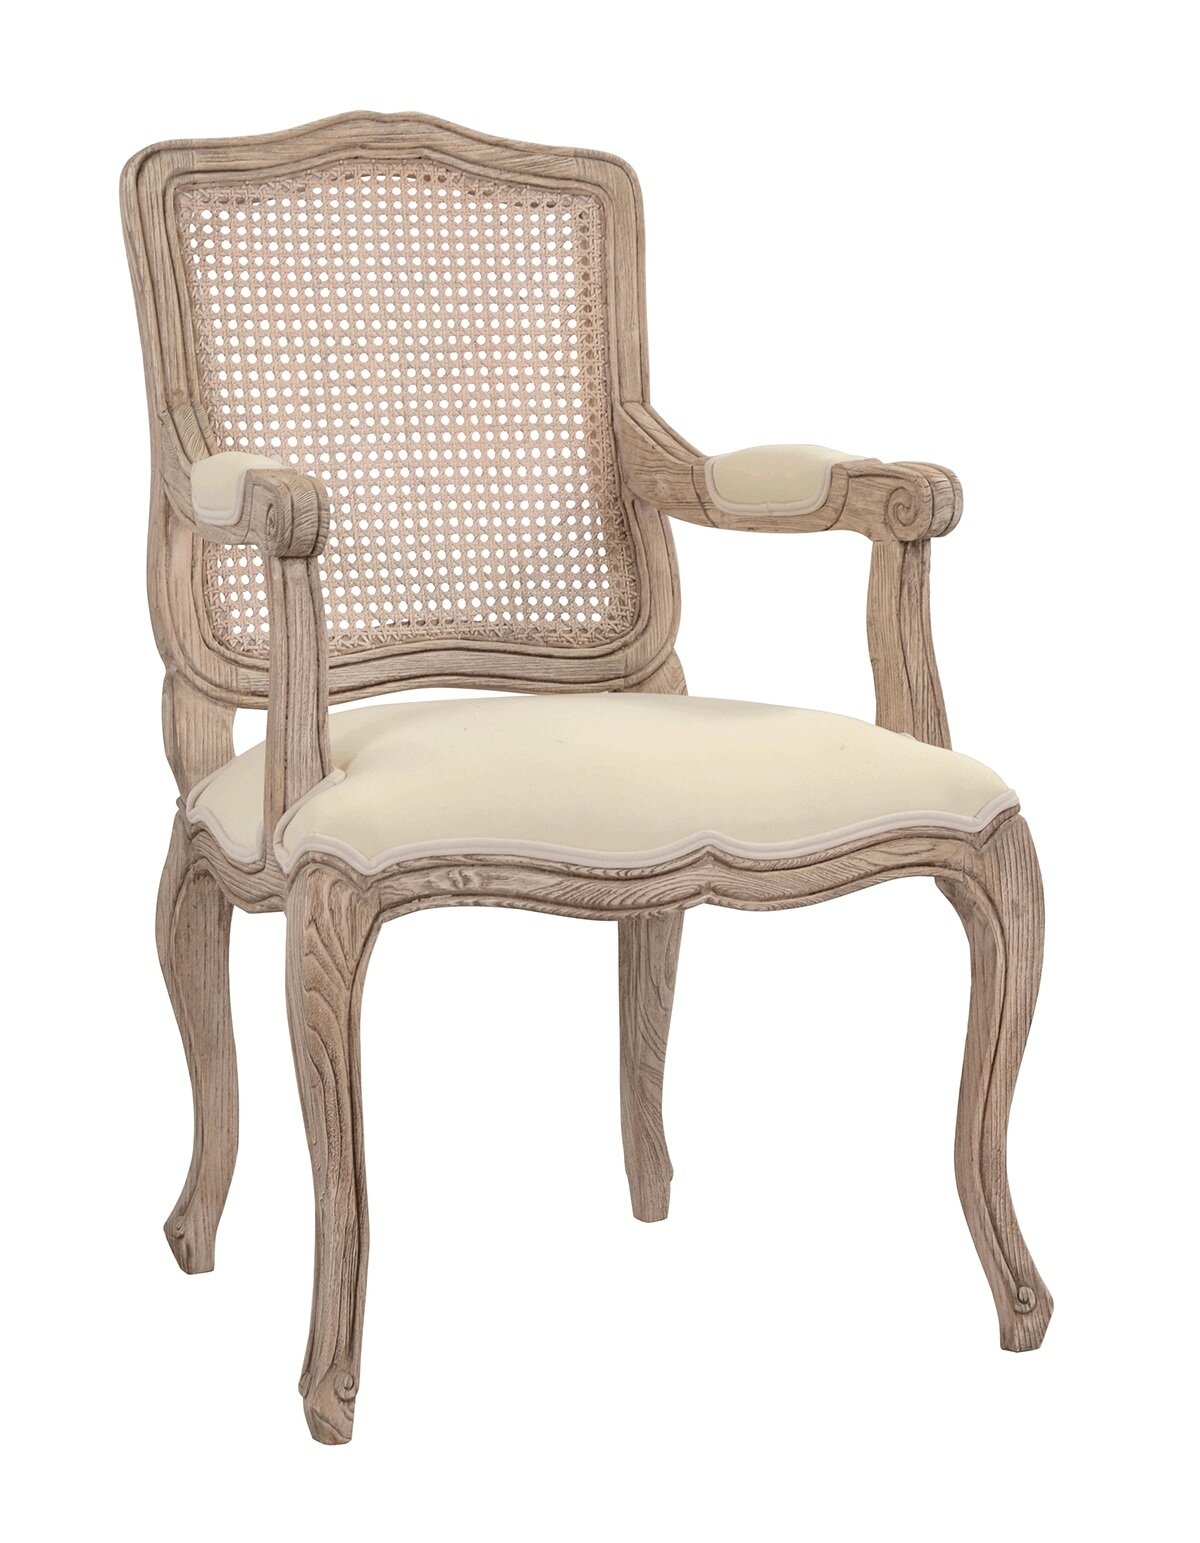 Langlois furniture Furniture Muskegon Home Interior Design Ideas One Allium Way Langlois Arm Chair Reviews Wayfair